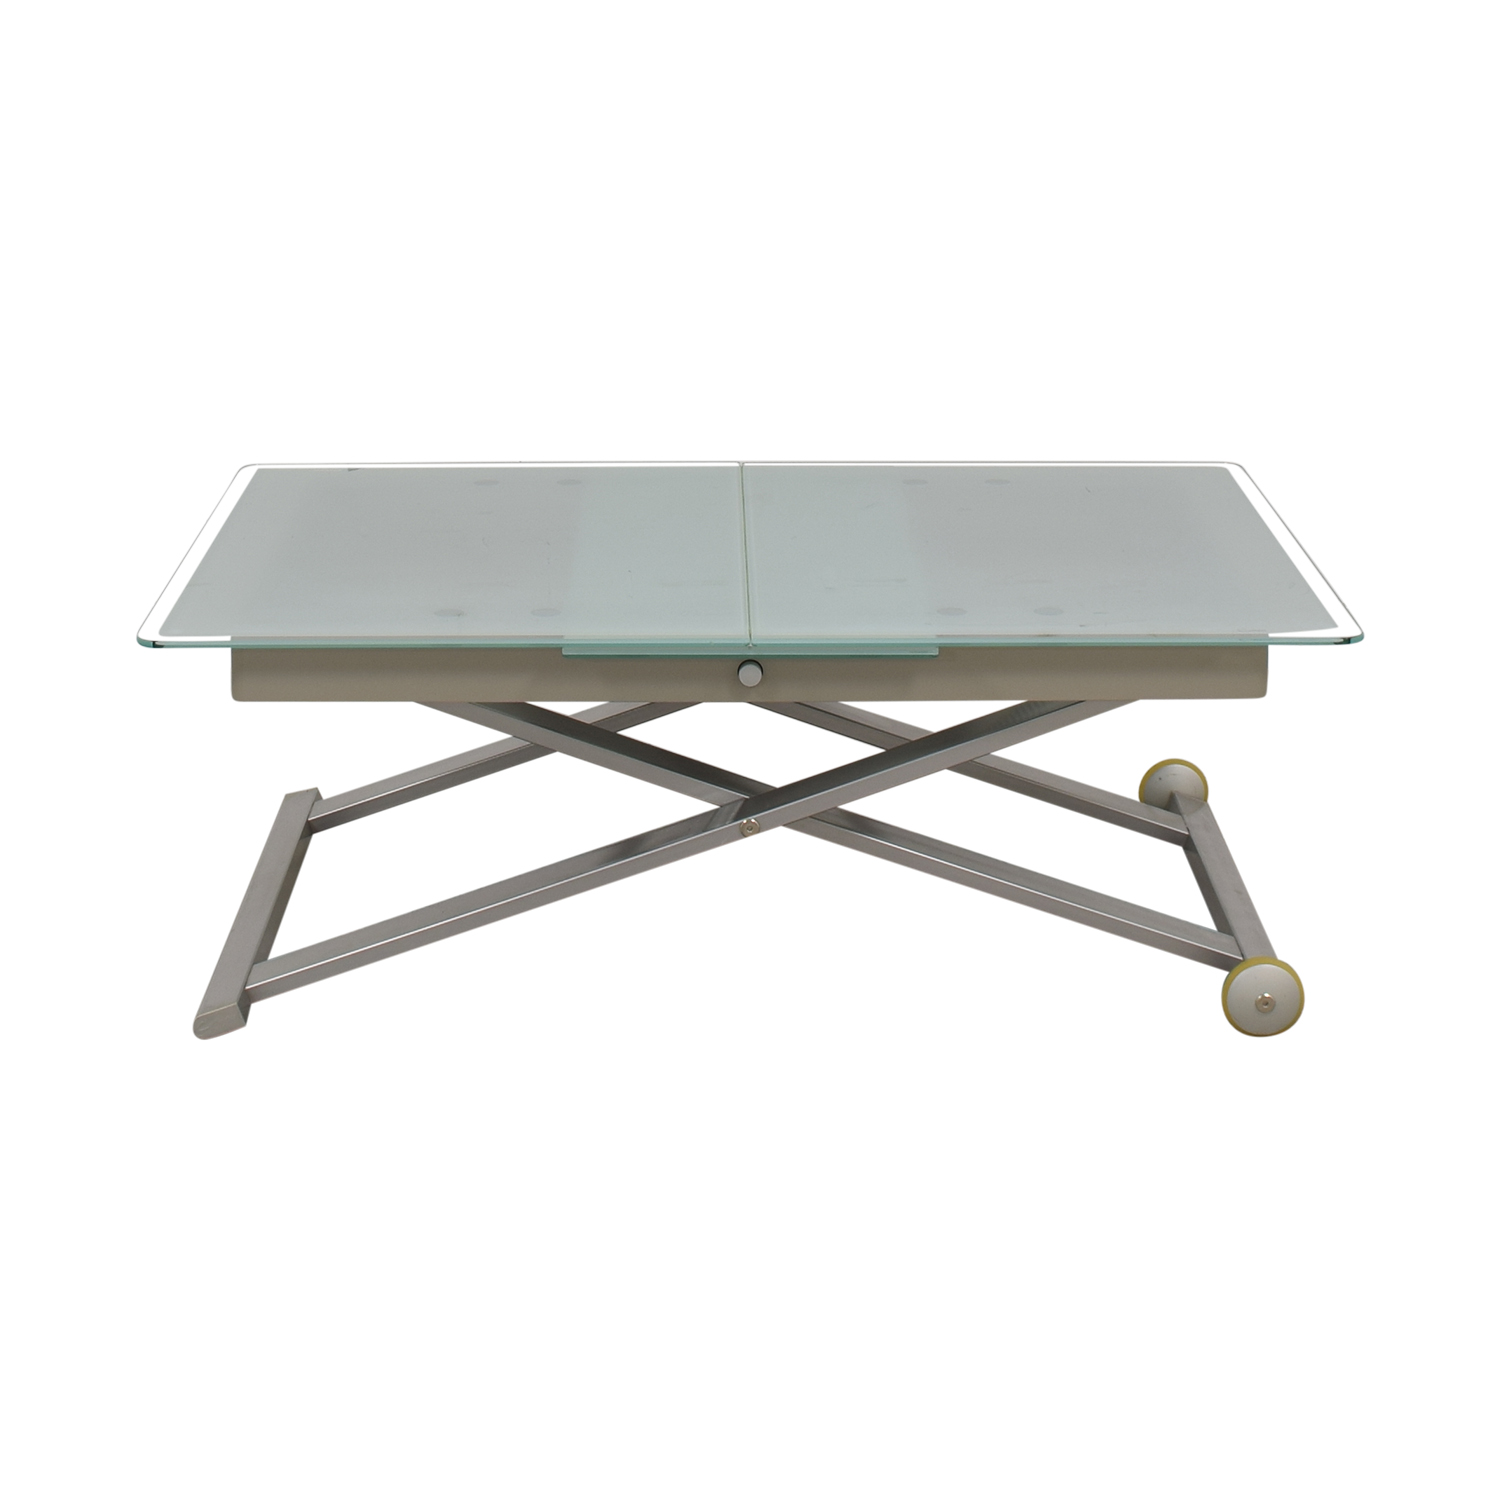 Calligaris Adjustable Extension Table Calligaris